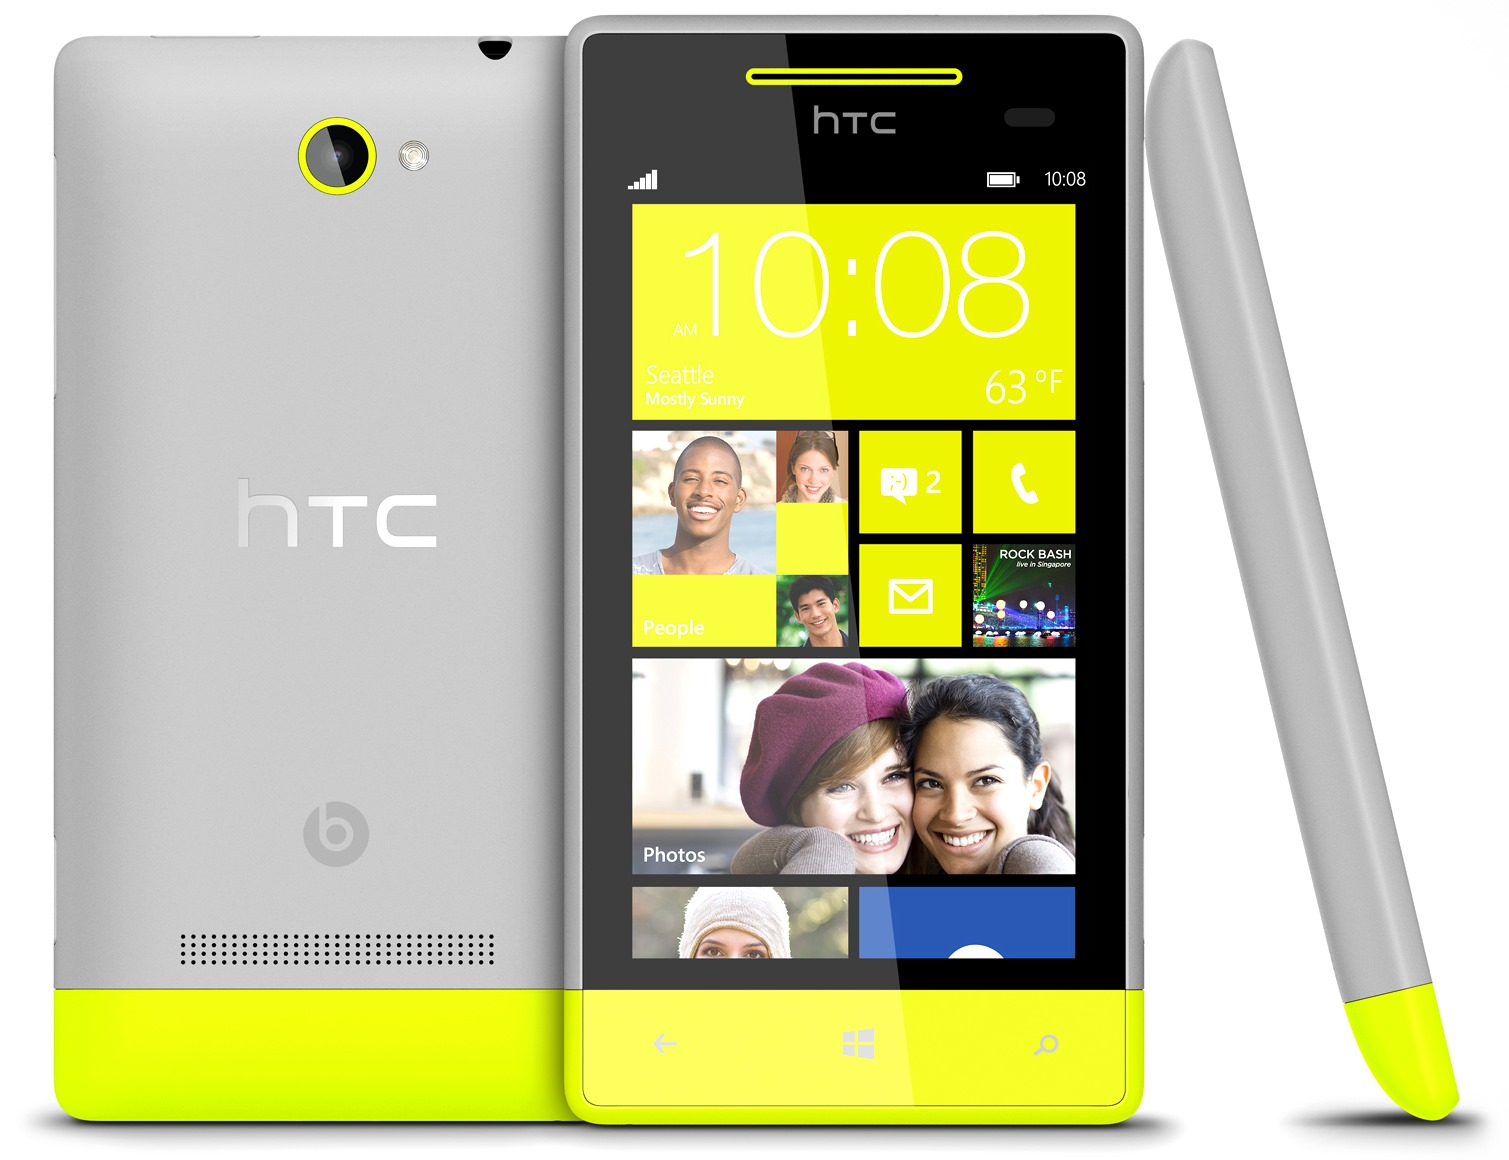 Htc windows phone 8s [features,demo,review]